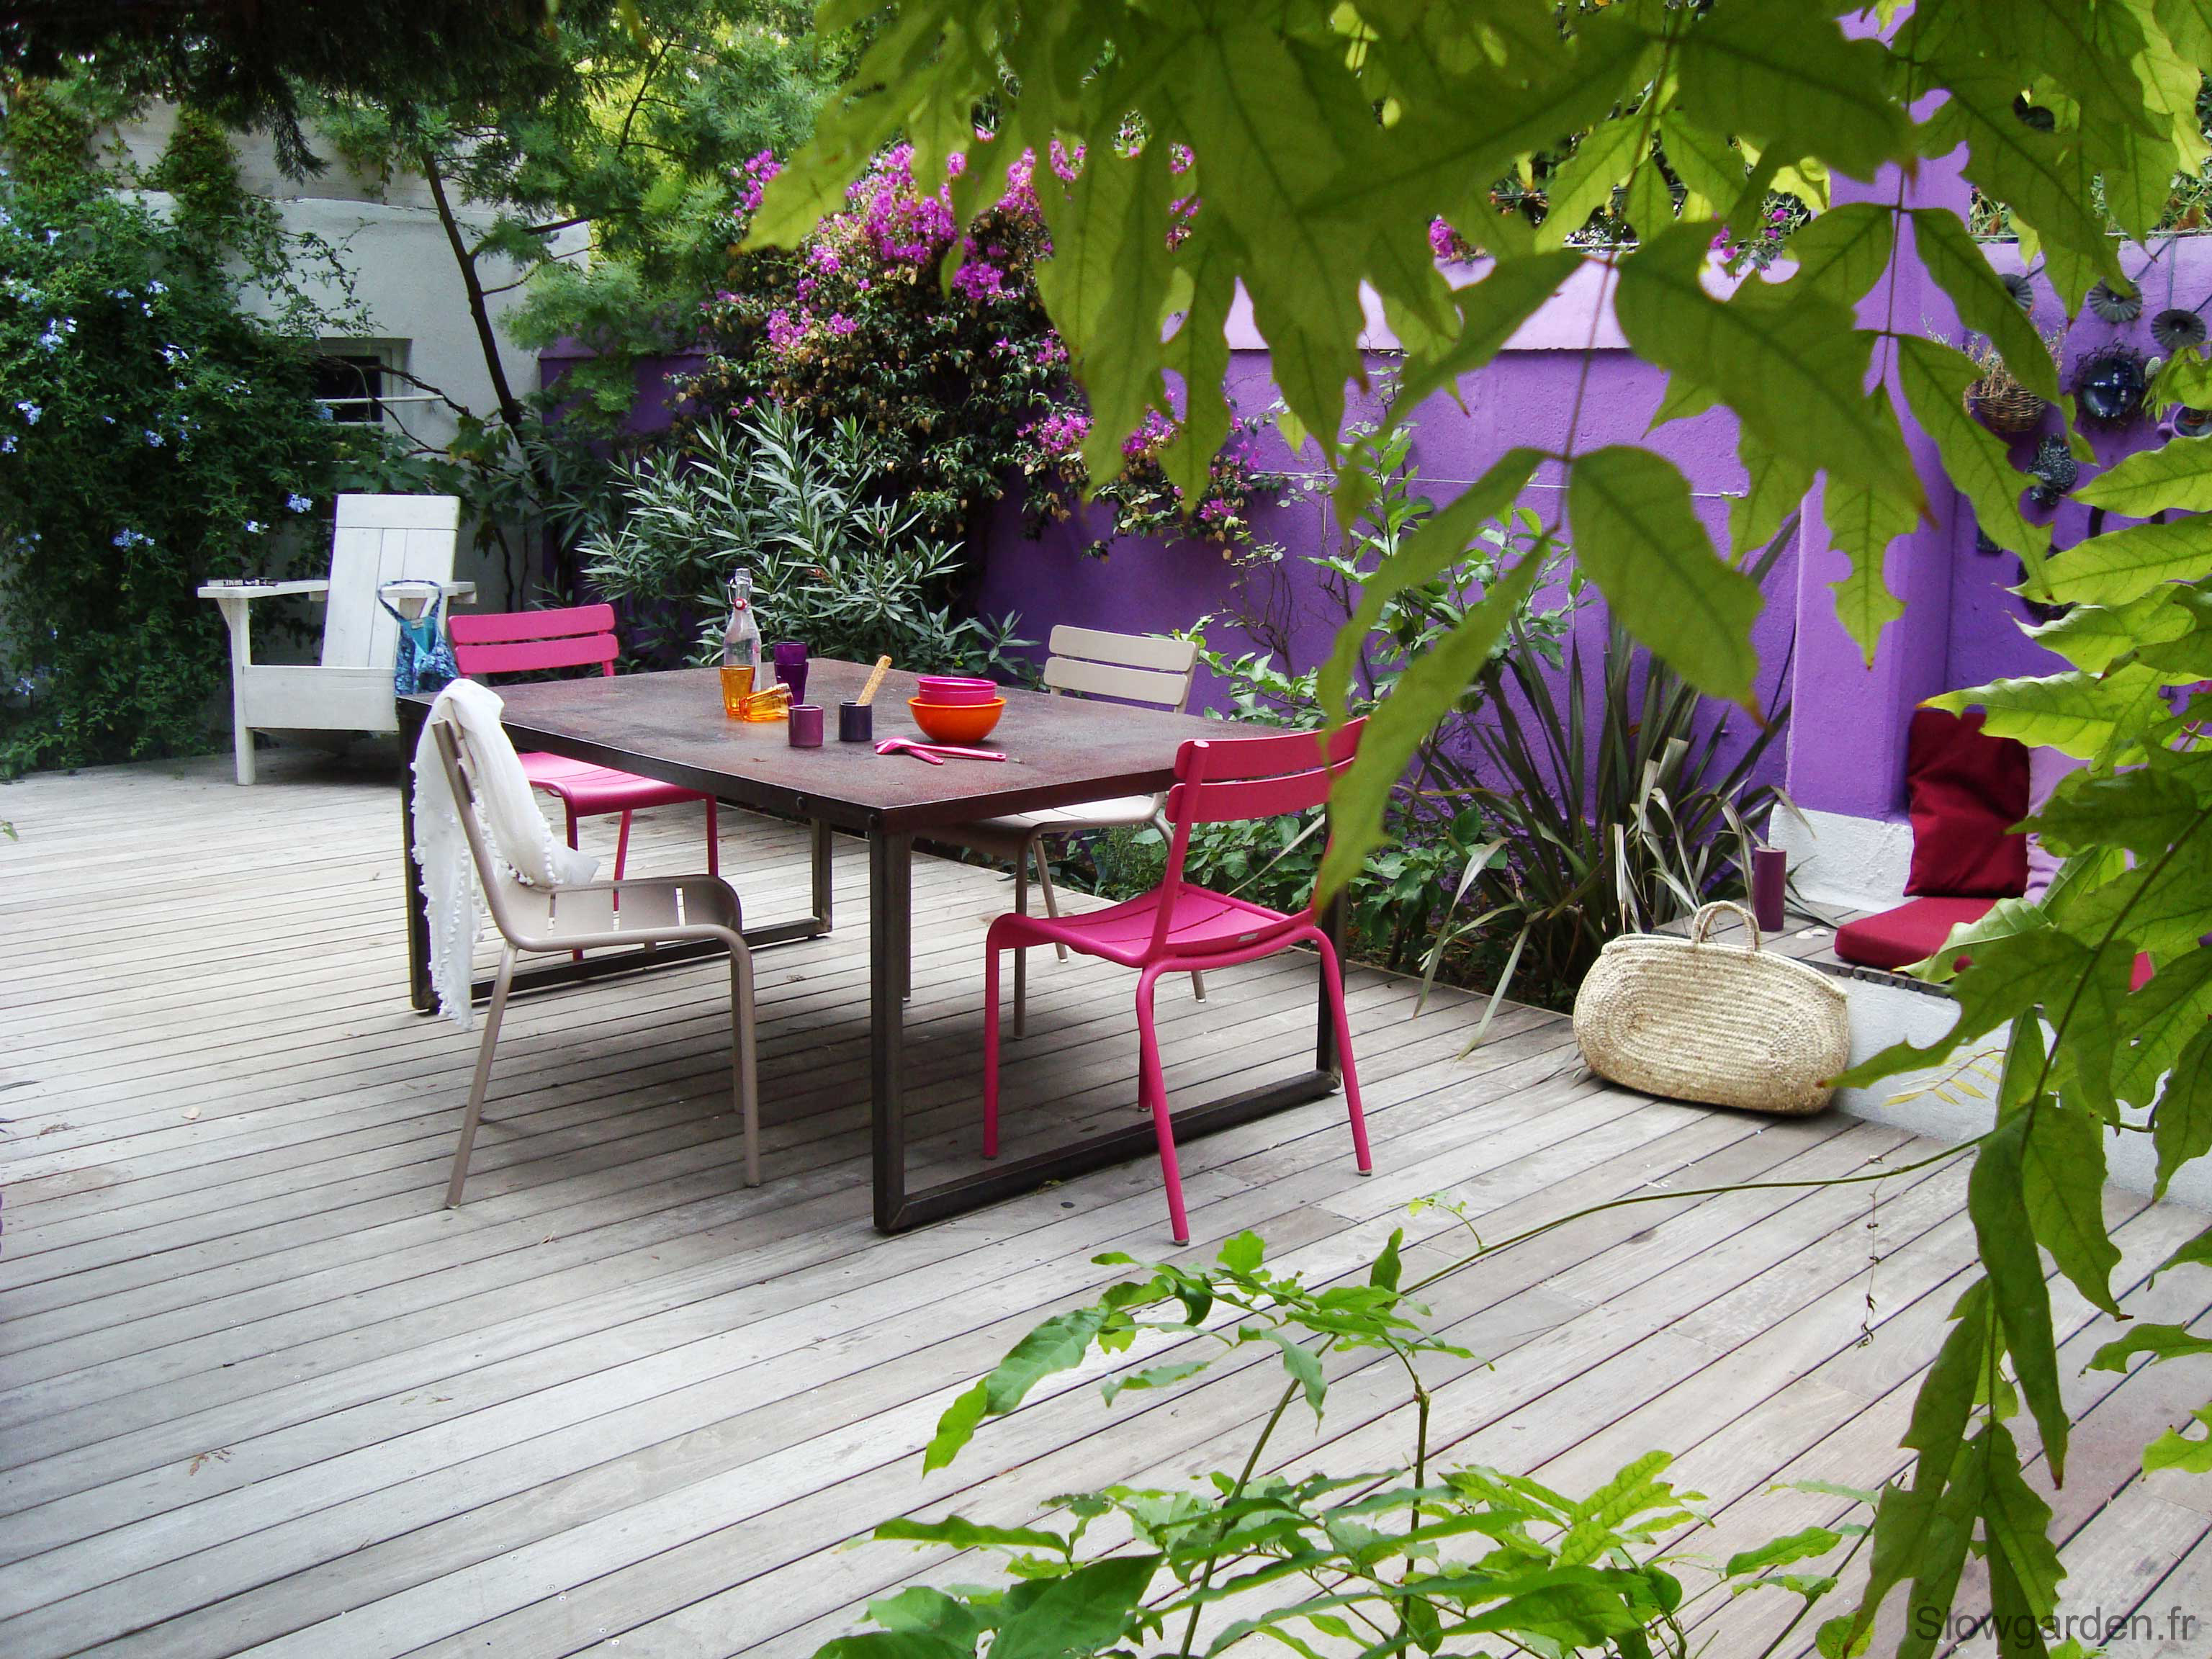 Paysagiste marseille un jardin plus color for Idee deco paysagiste